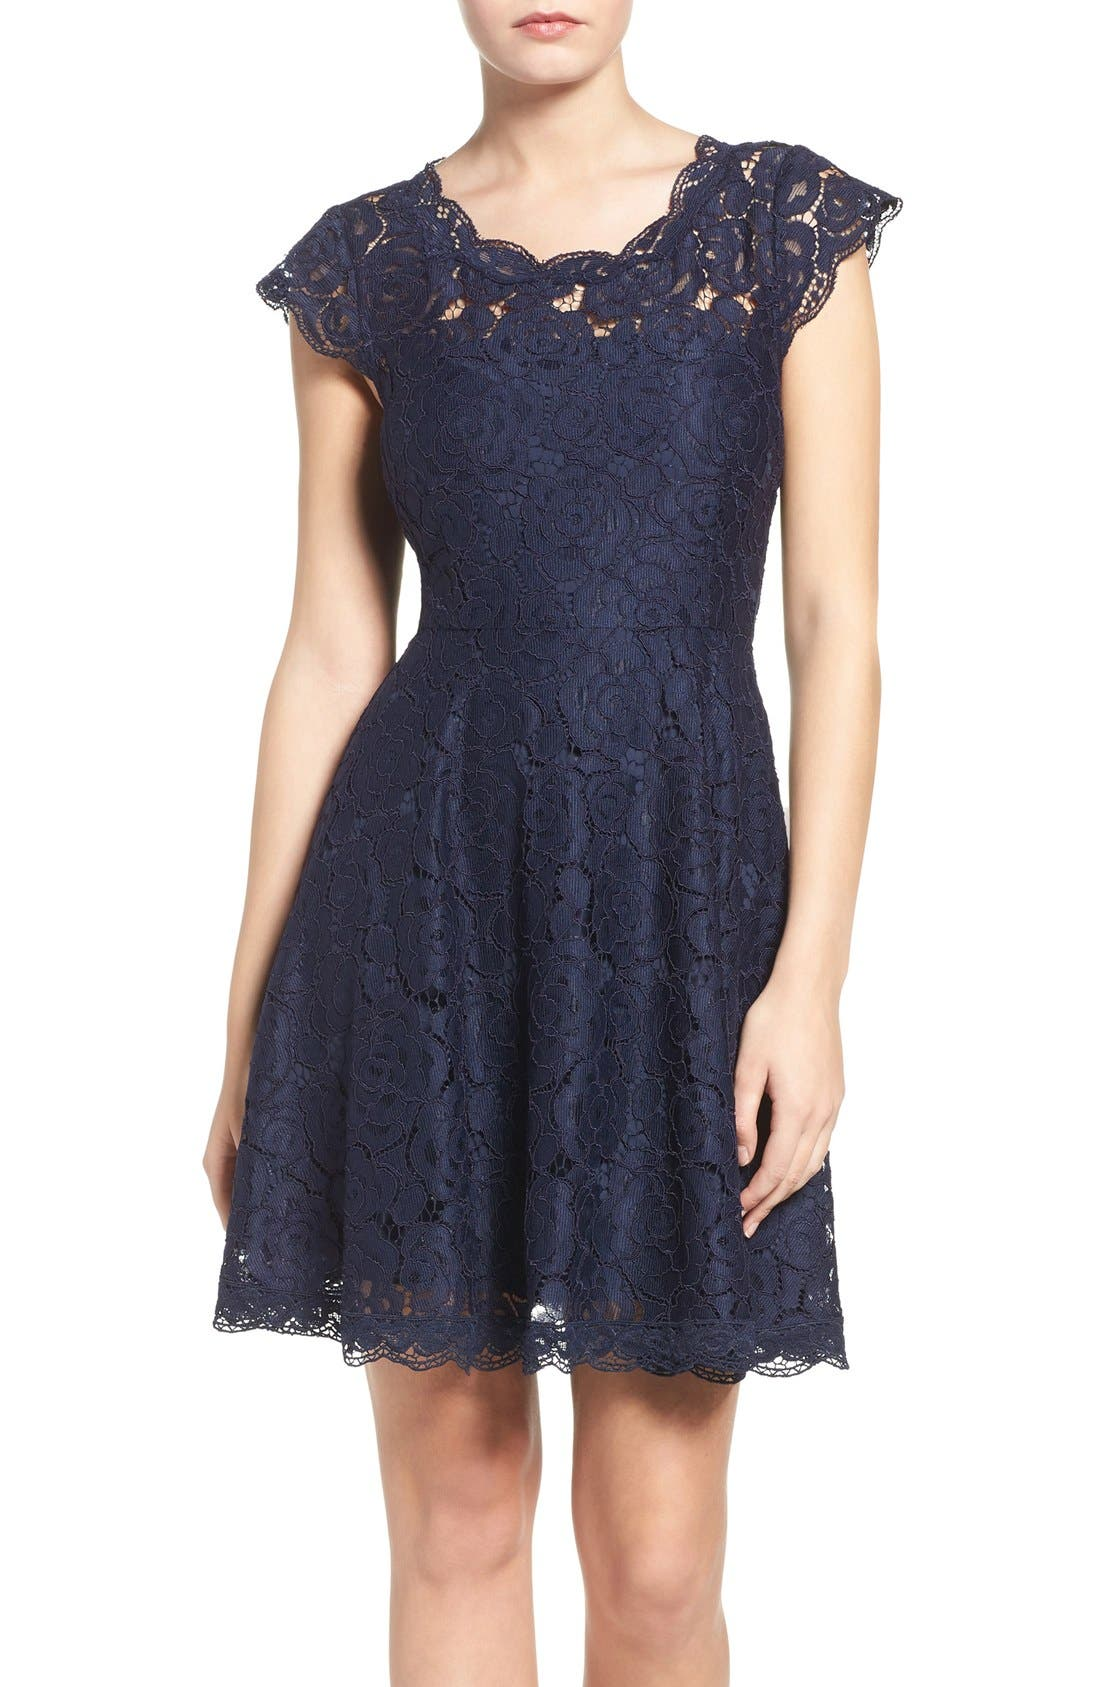 Alternate Image 1 Selected - BB Dakota Lace Fit & Flare Dress